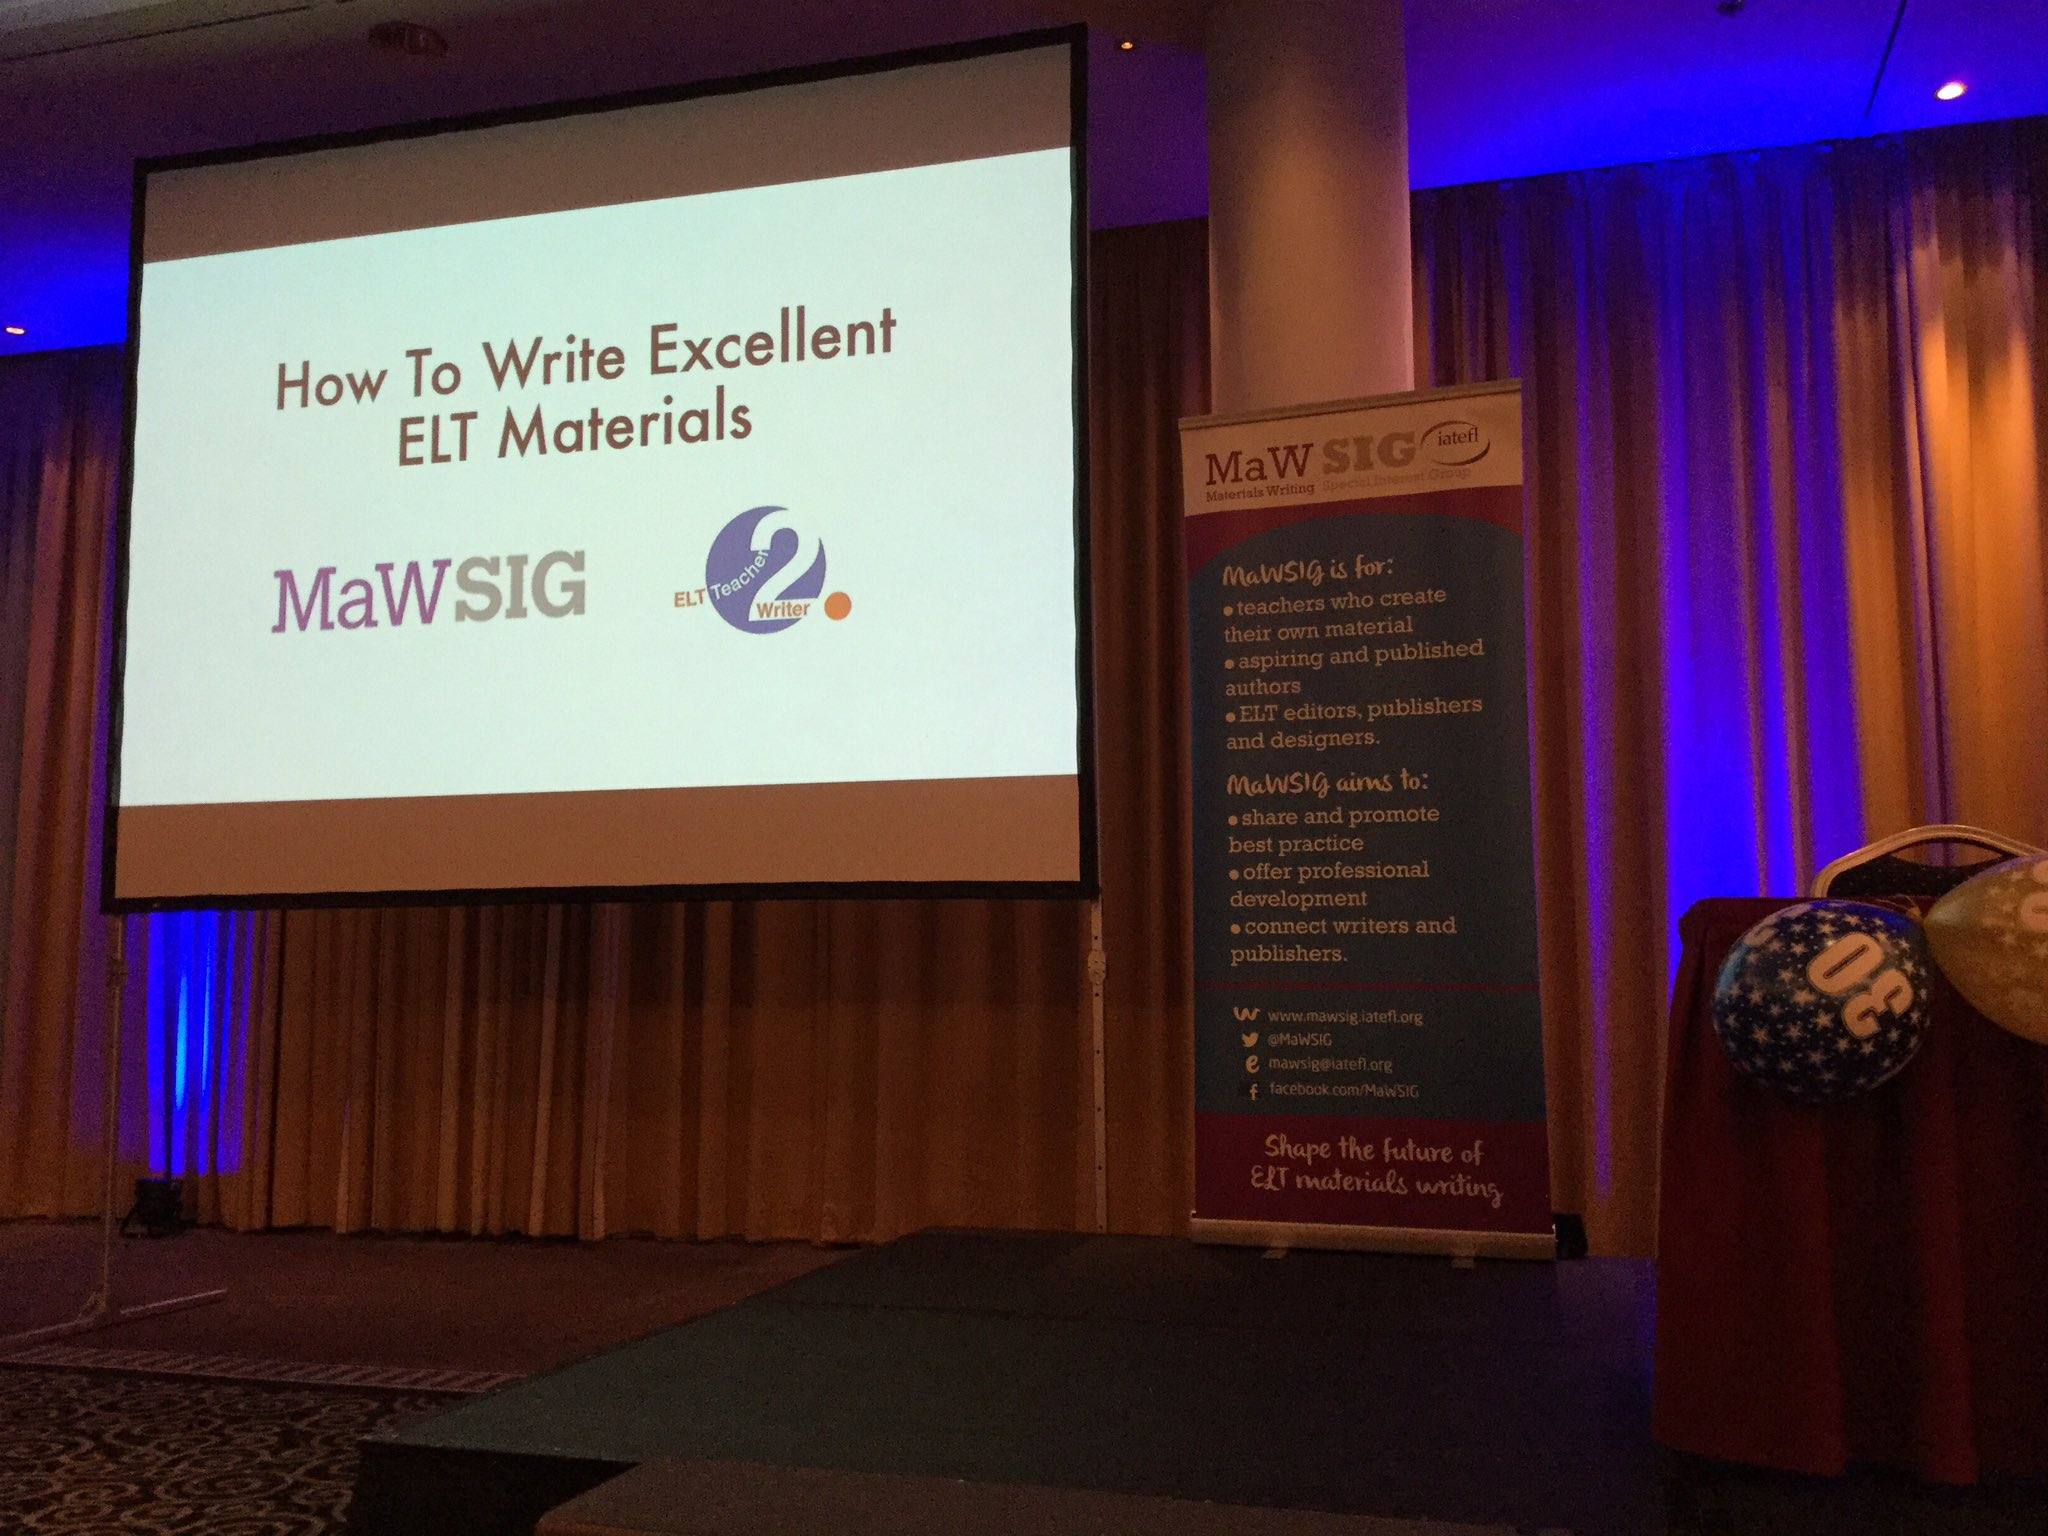 How To Write Excellent #ELT Materials is ready to start! #MaWSIG https://t.co/KTwy6jMlza